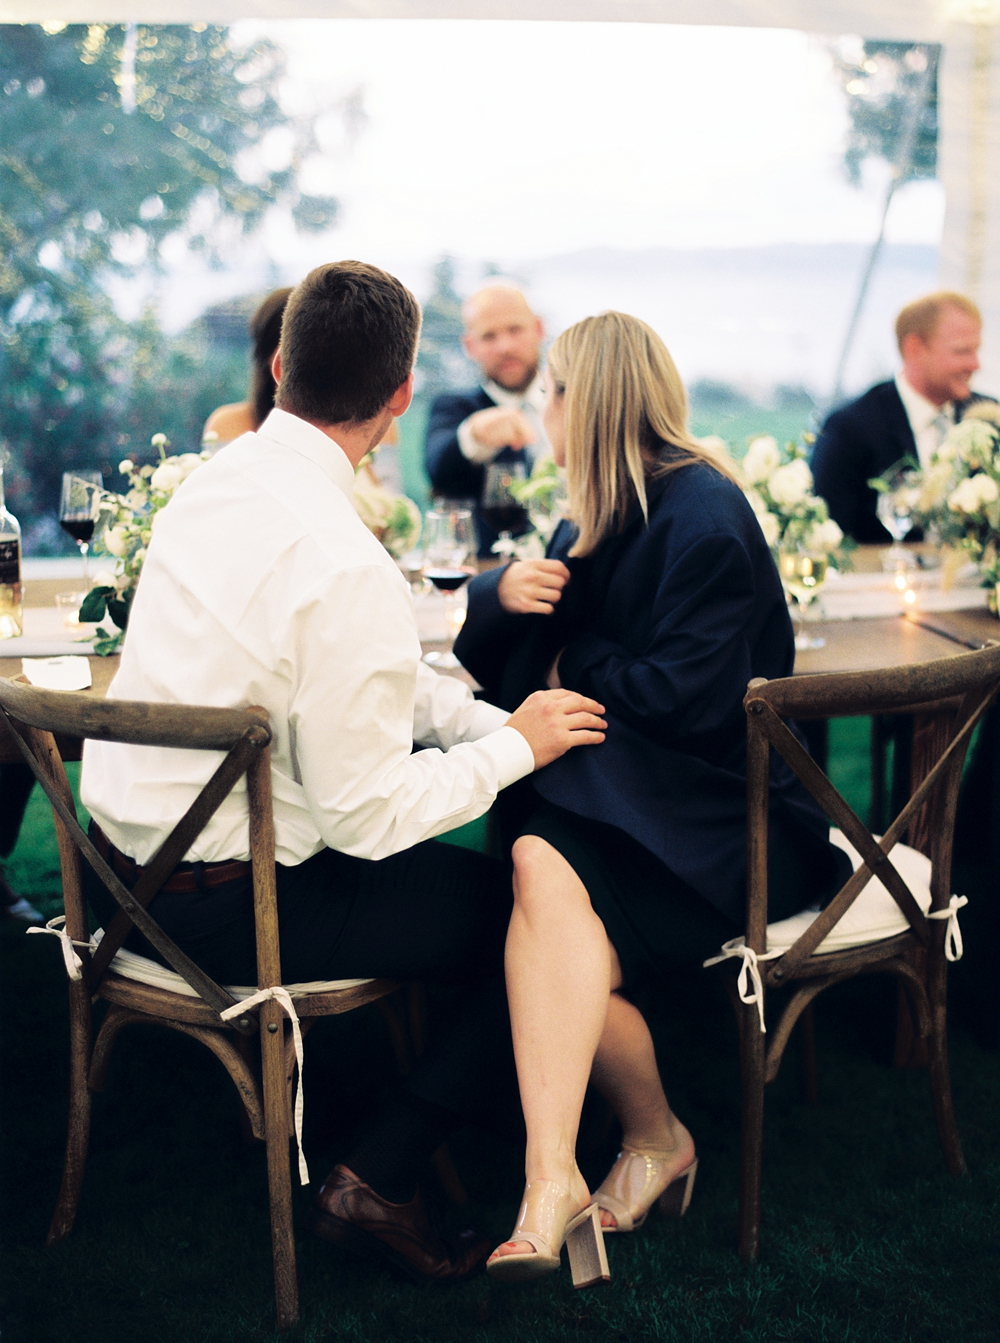 bridal party member sitting at the head table during reception, bridesmaid wearing groosman's jacket